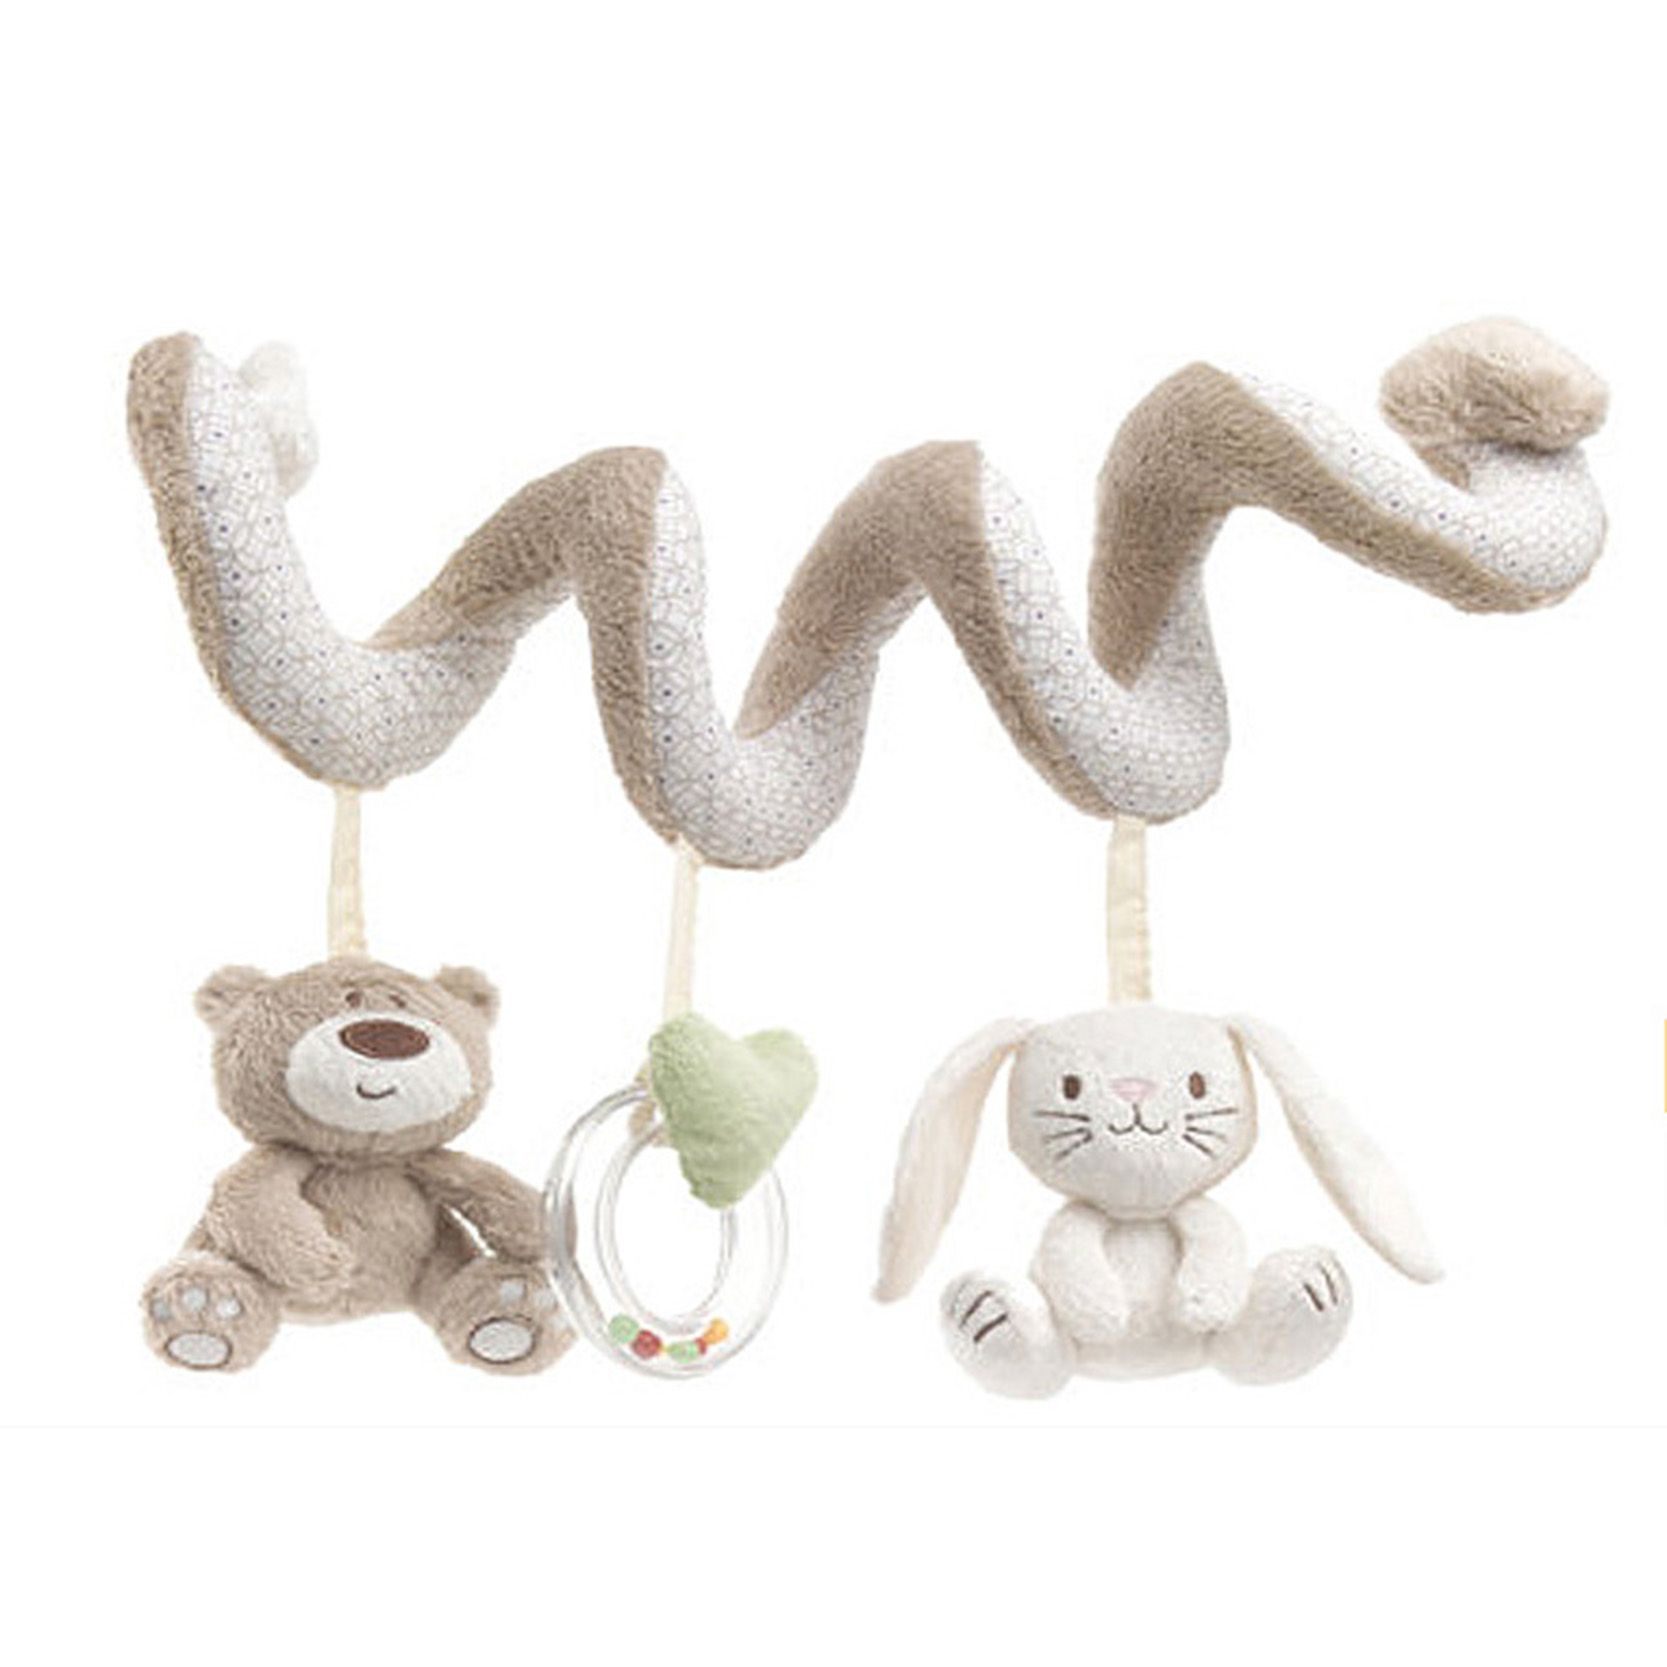 Car hanging soft toys  Baby Rattle Bed Stroller Hanging Spiral Activity Rabbit Musical